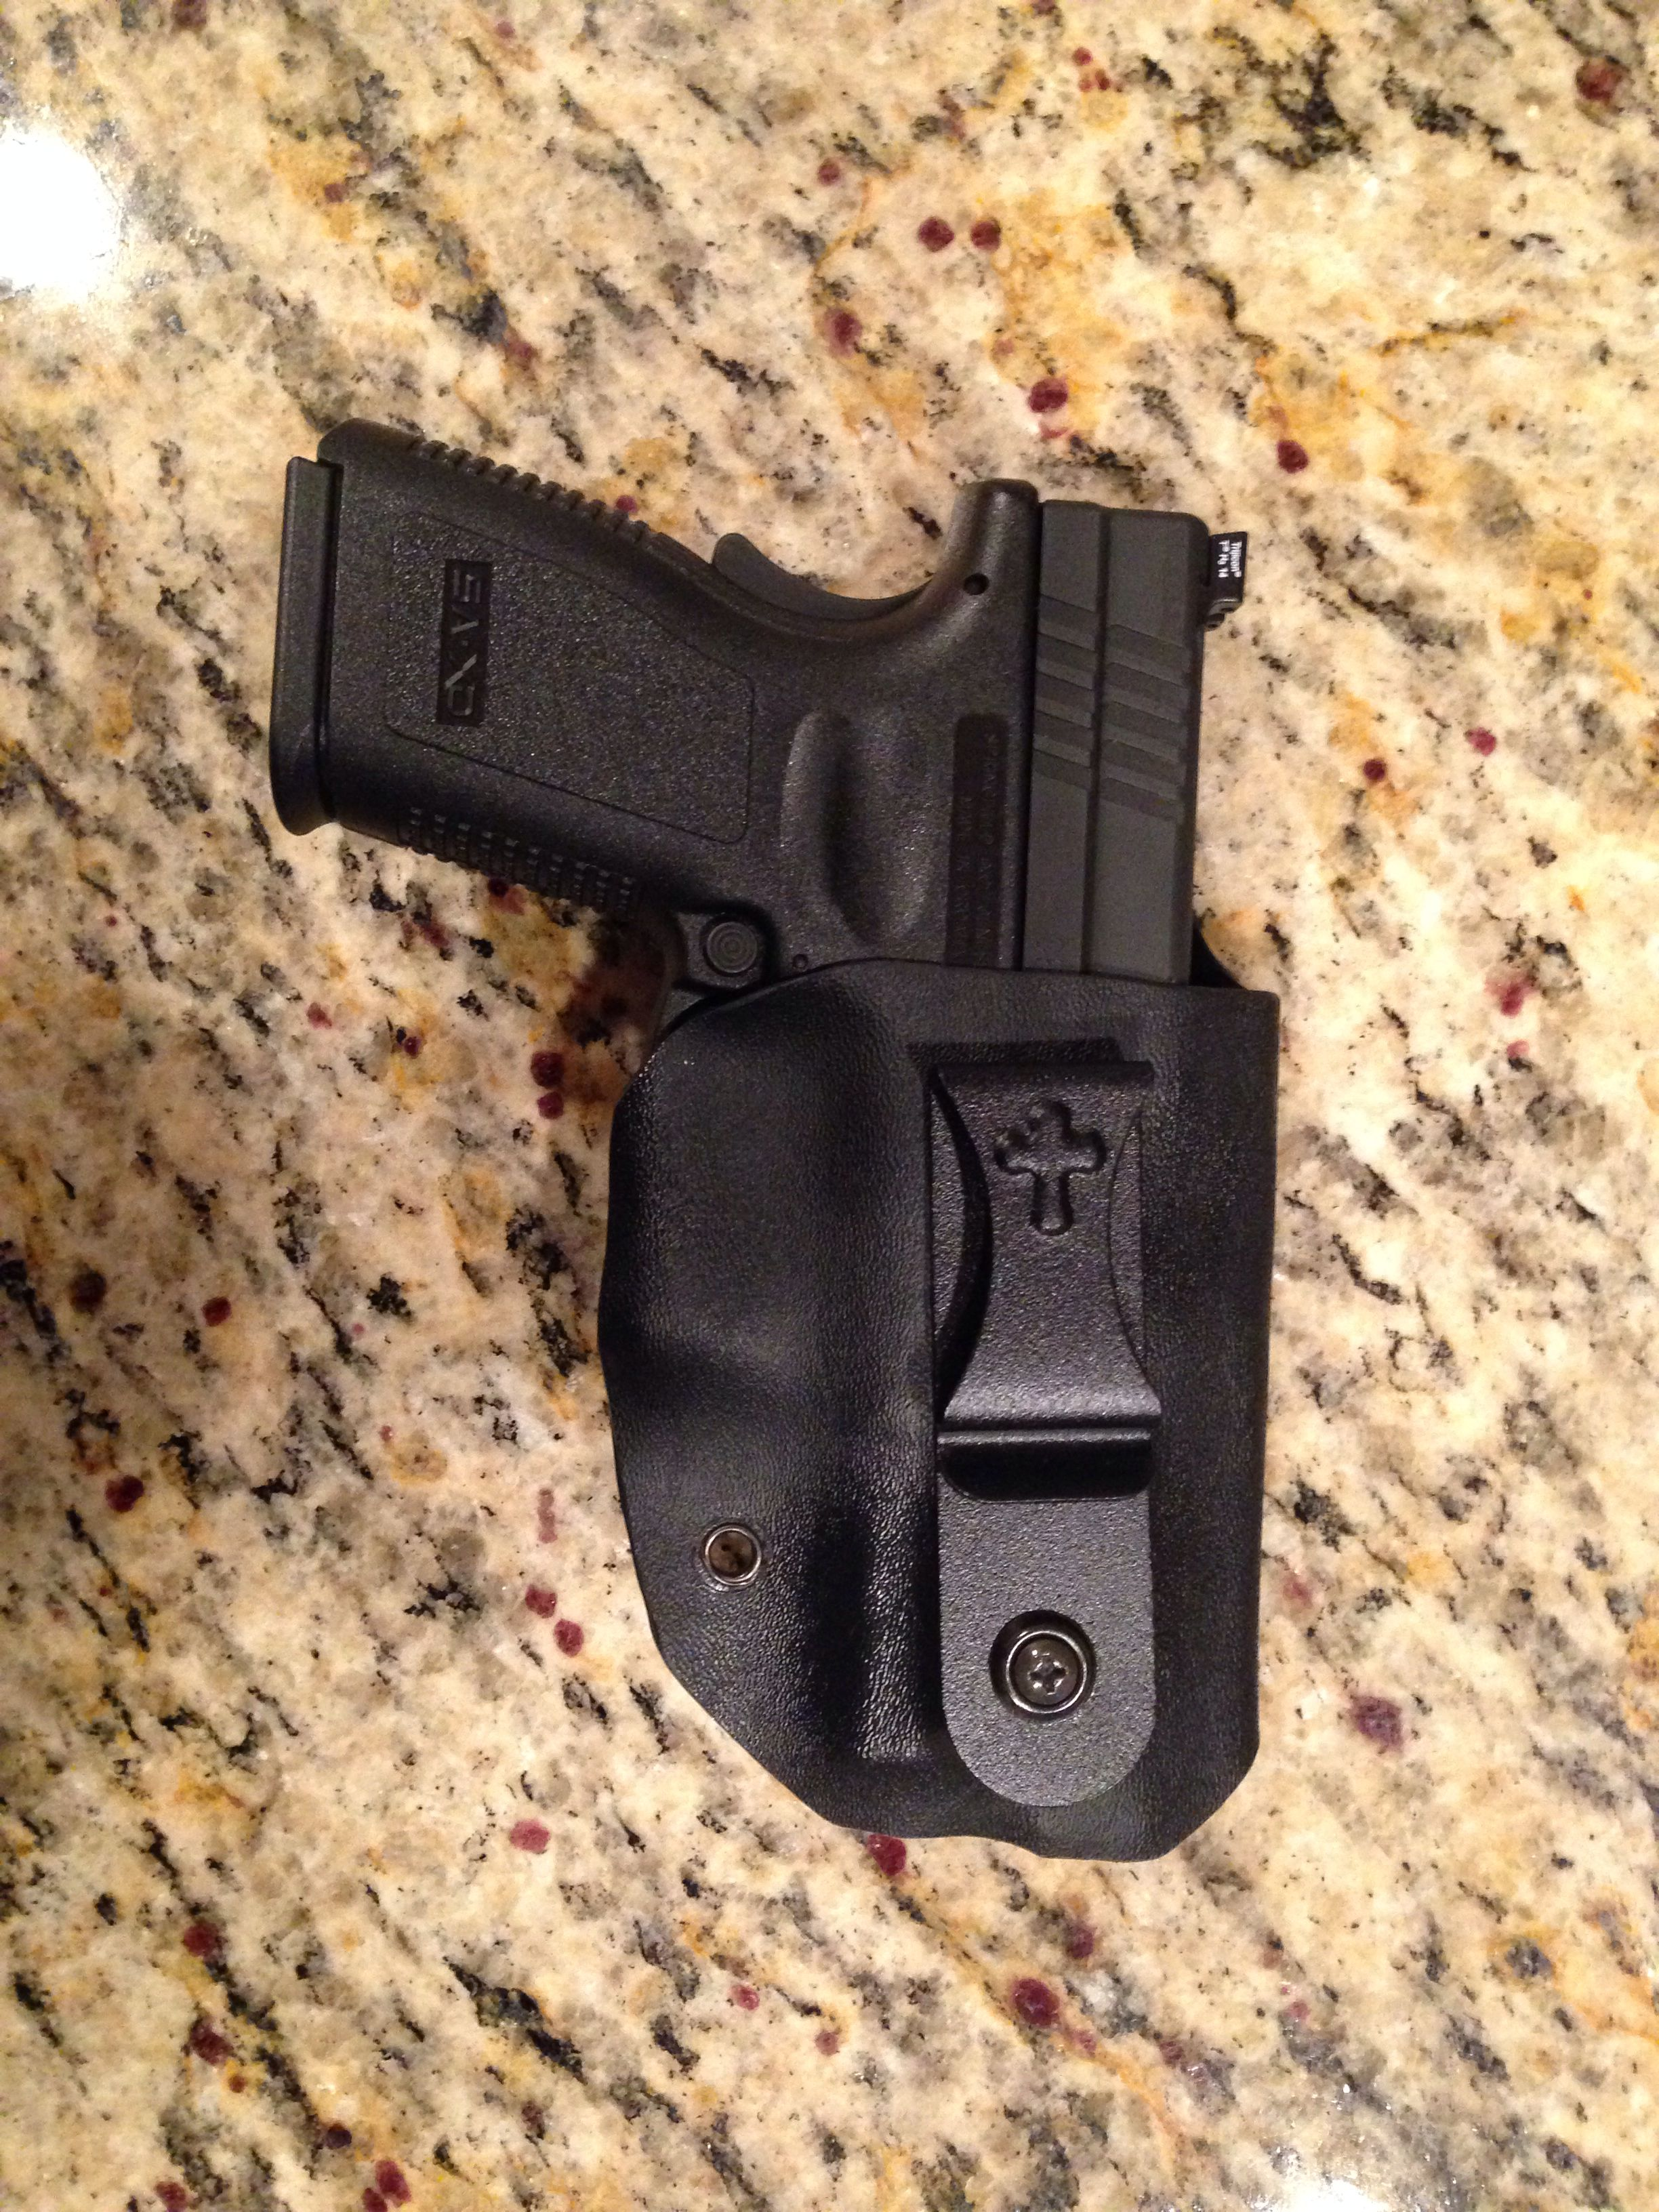 First diy kydex holster for my xd45 compact kydex